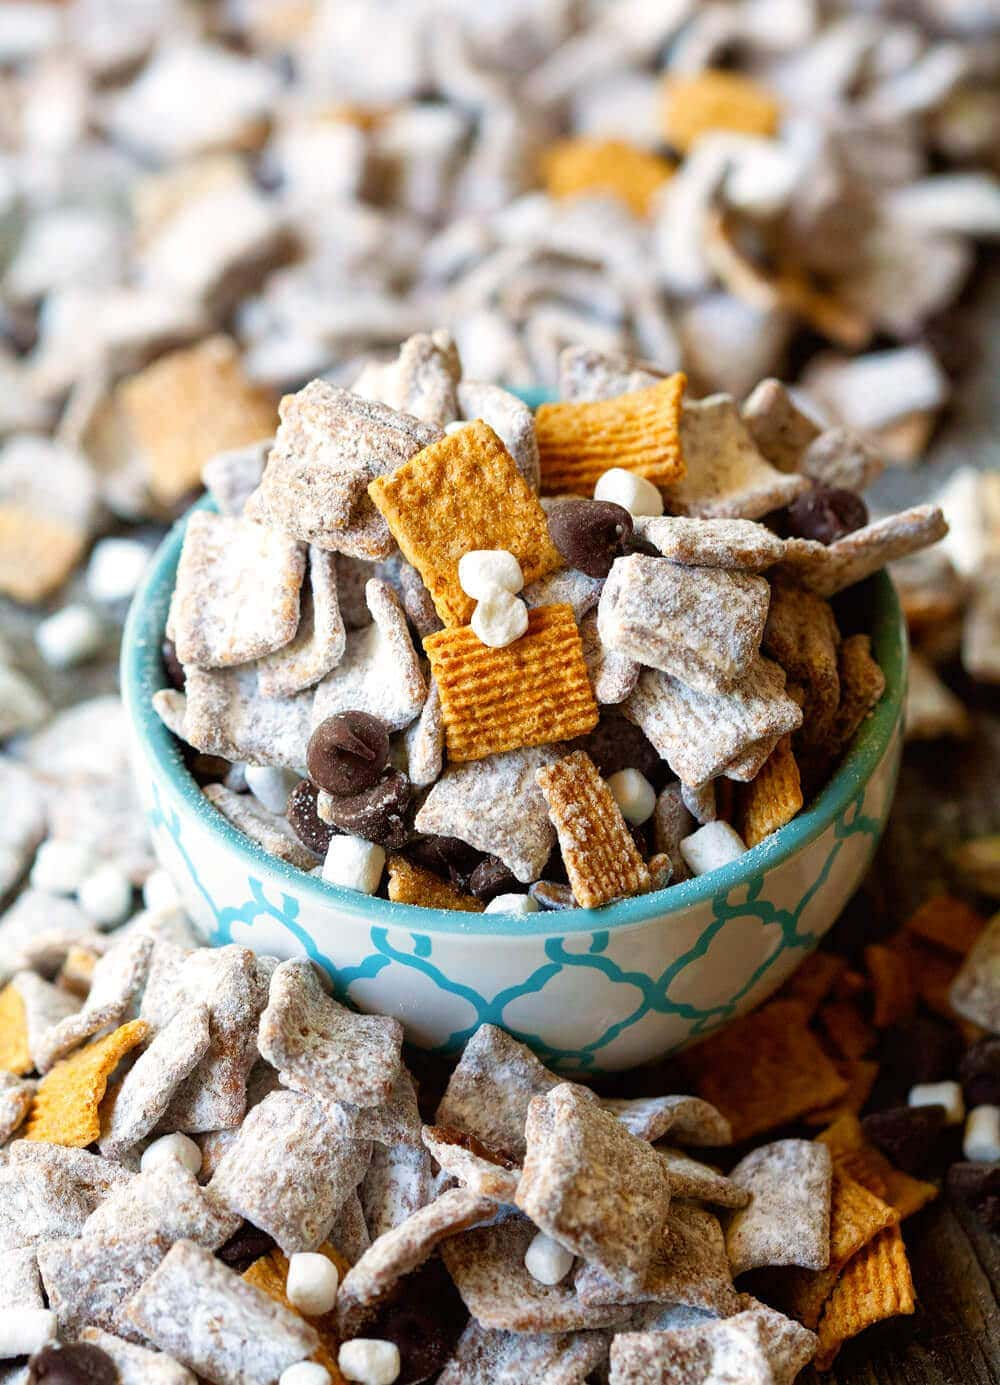 S'mores Muddy Buddies ~ Only 5 Ingredient Recipe! Yummy mixture of Golden Graham cereal, chocolate chips, peanut butter, confectioner's sugar and mallow bits!